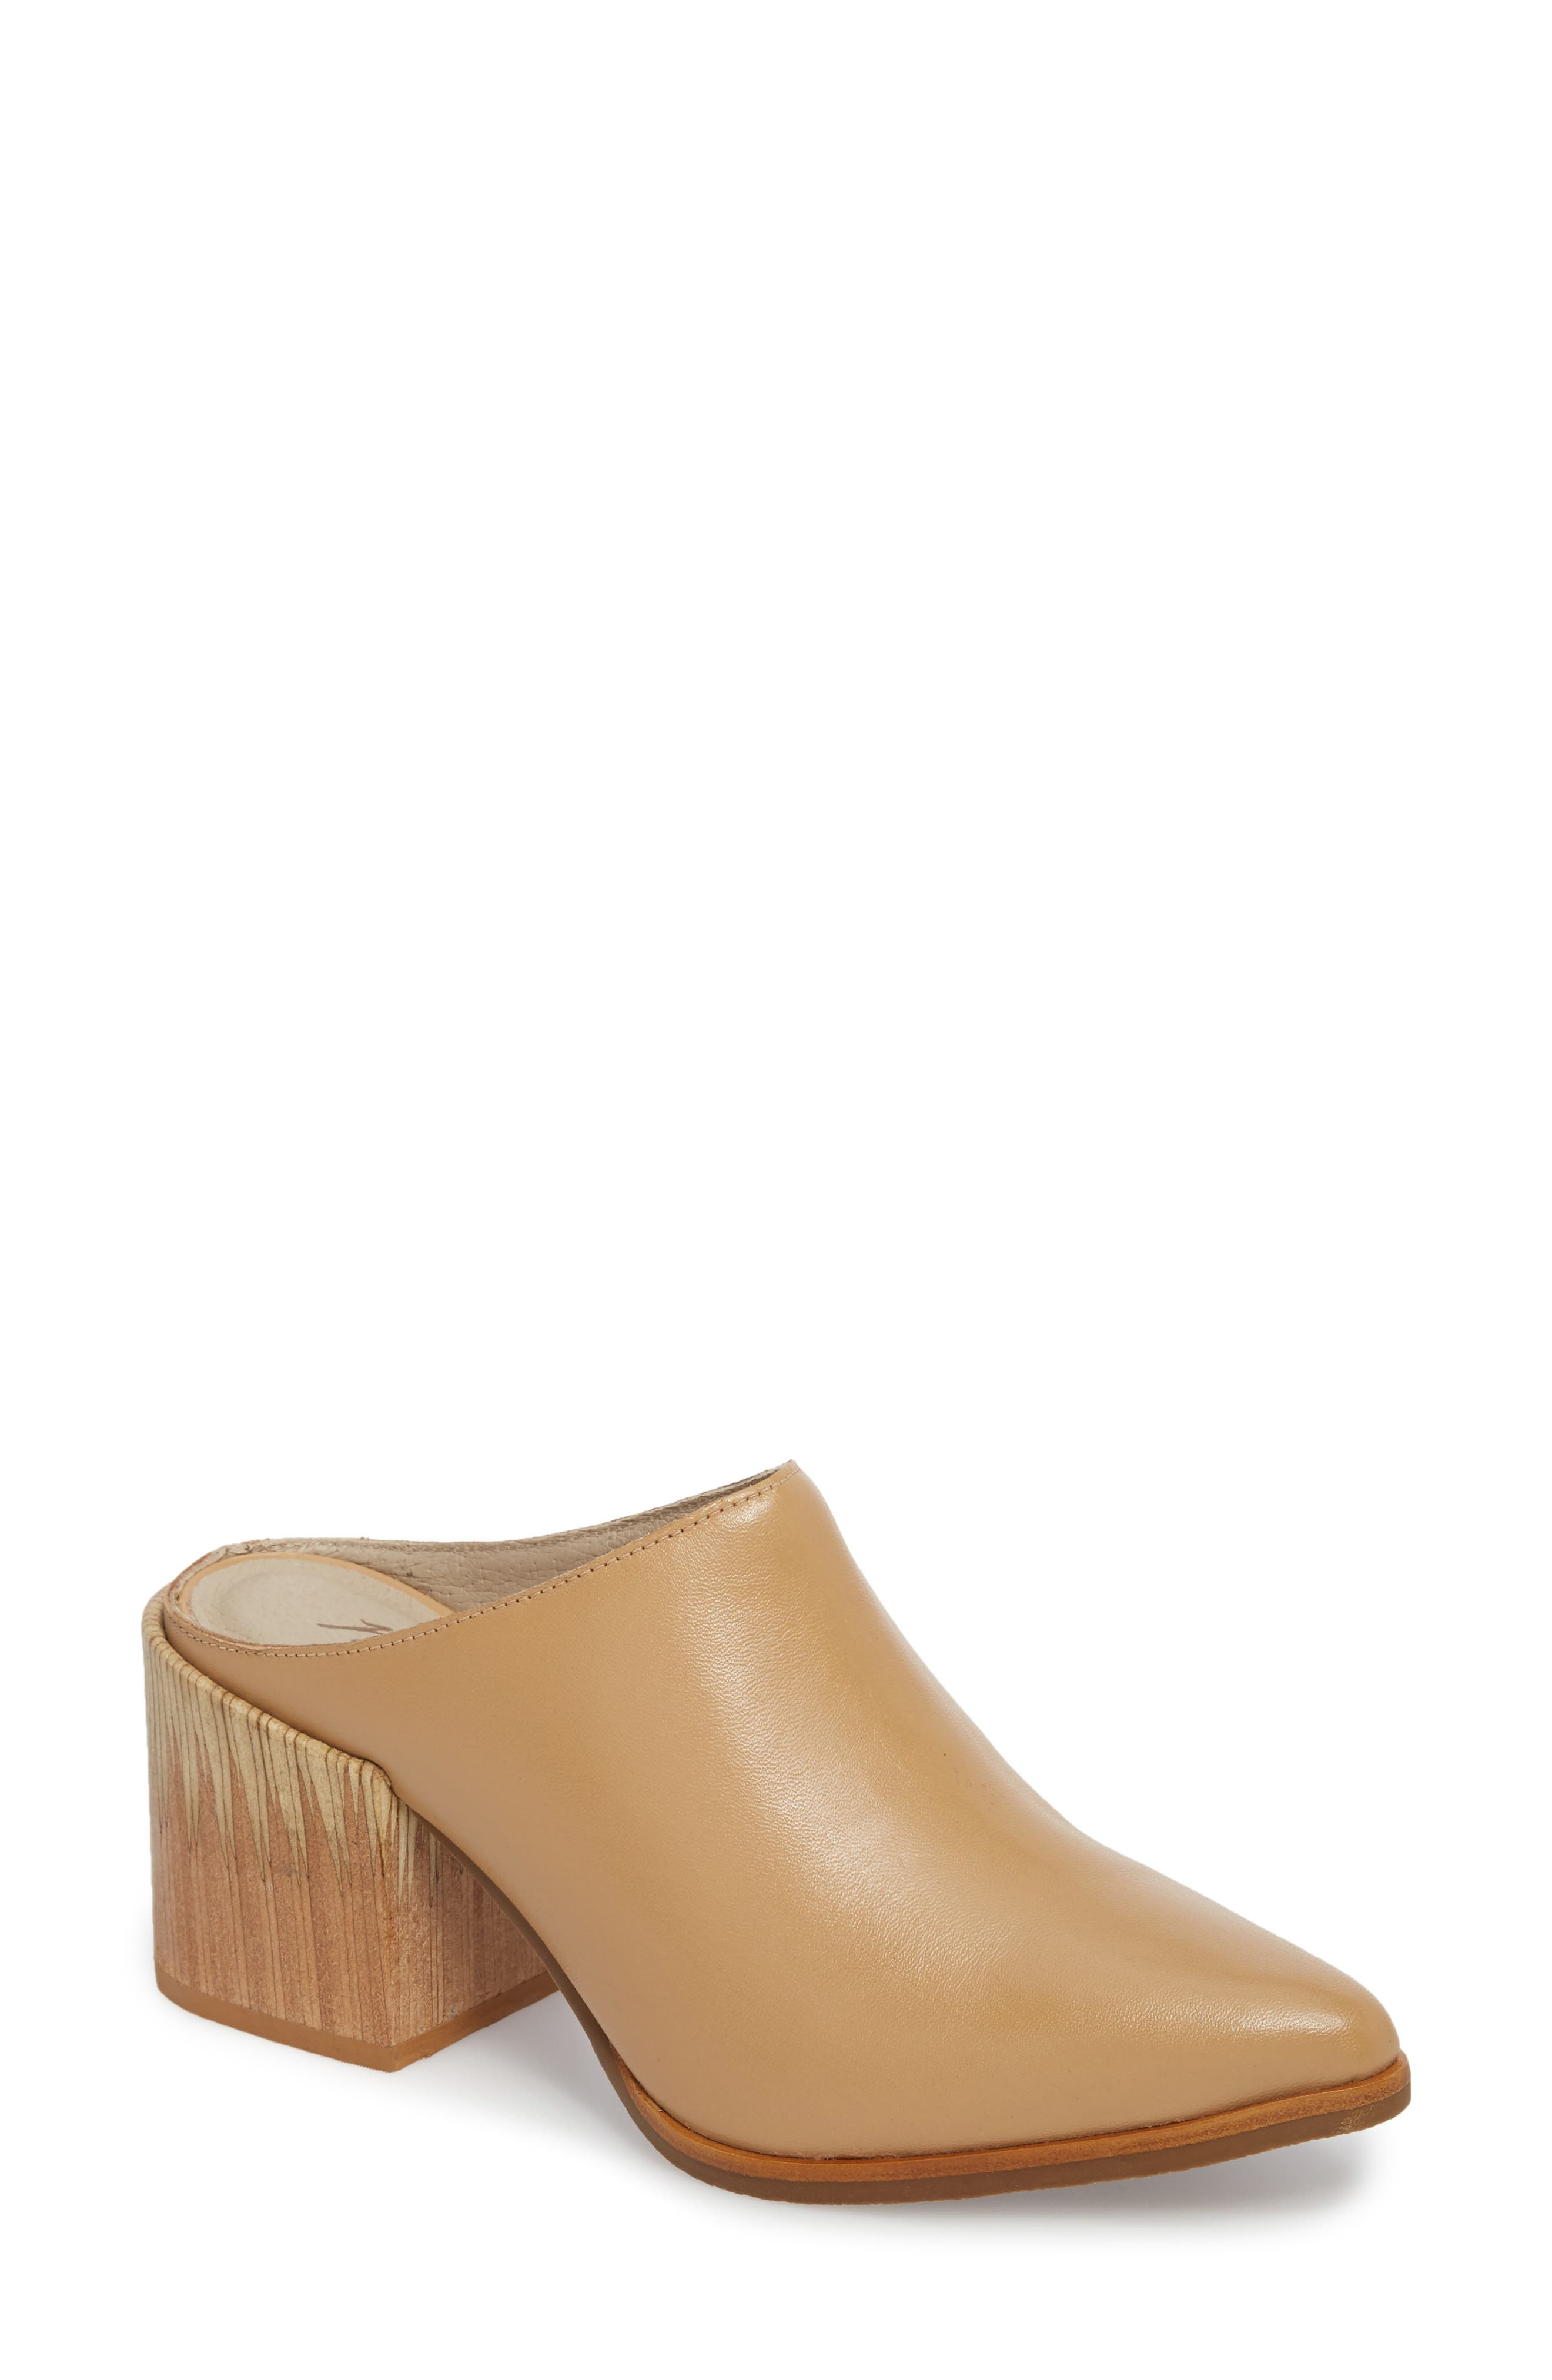 Evie Mule,                         Main,                         color, Natural Leather